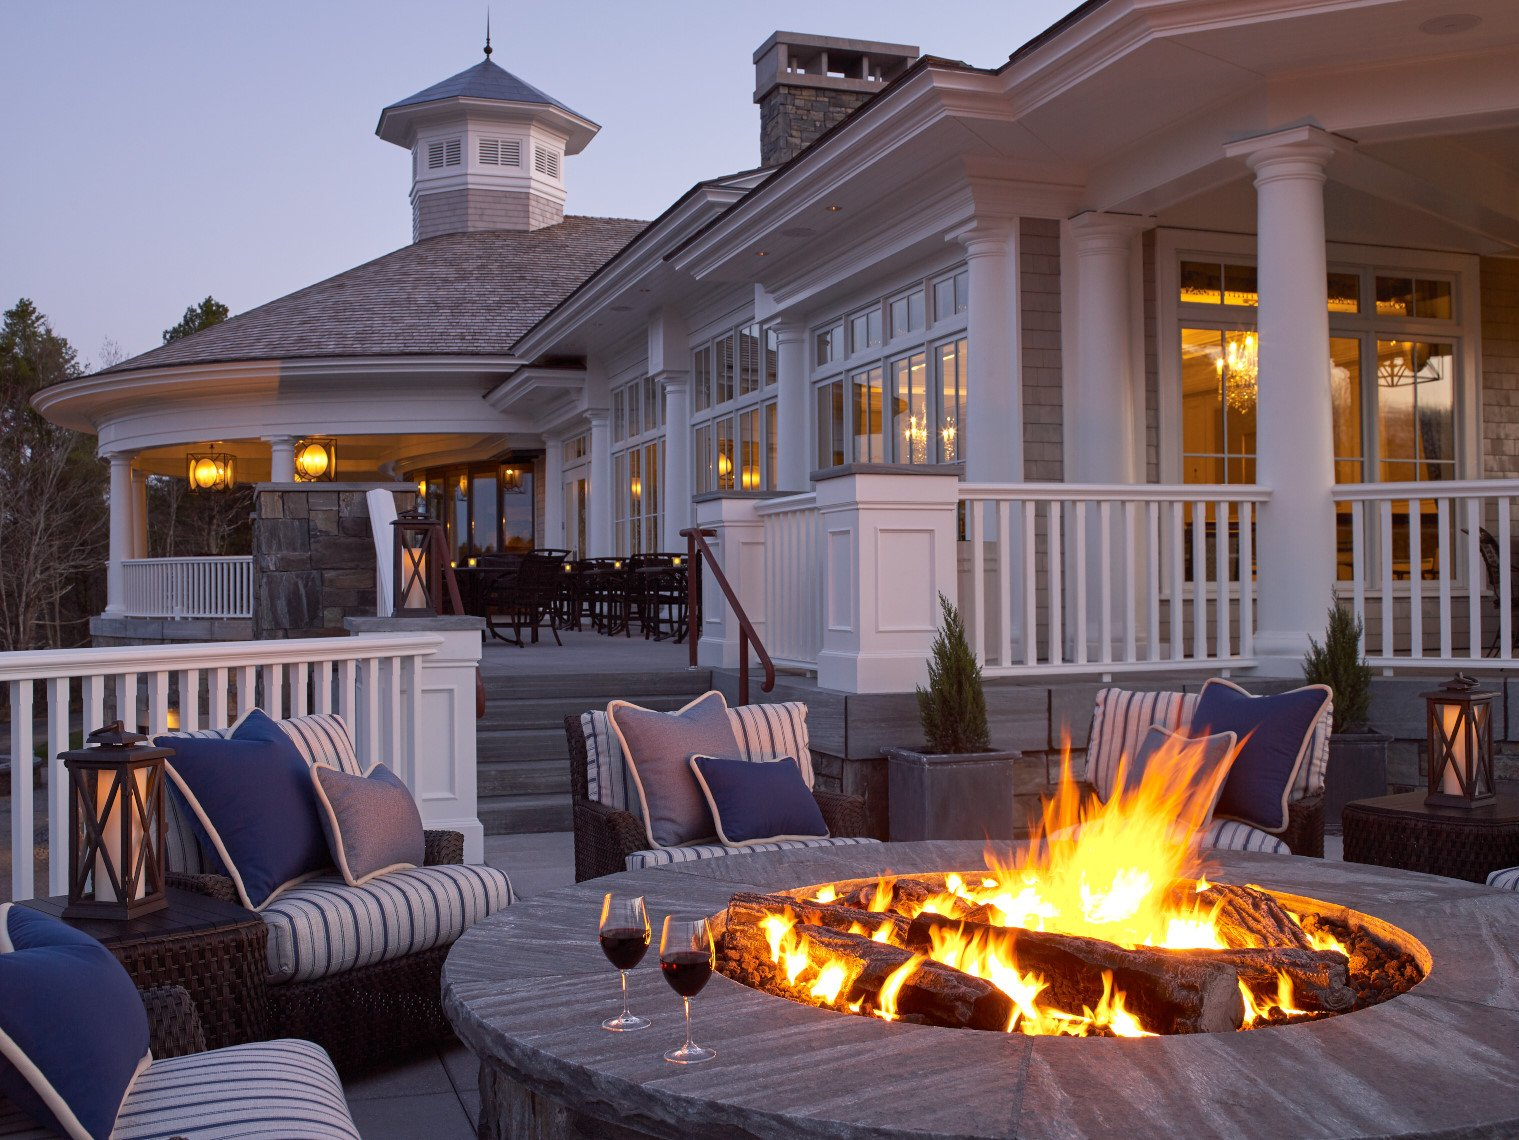 Enjoy a glass of wine and appetizers by our firepit with family & friends